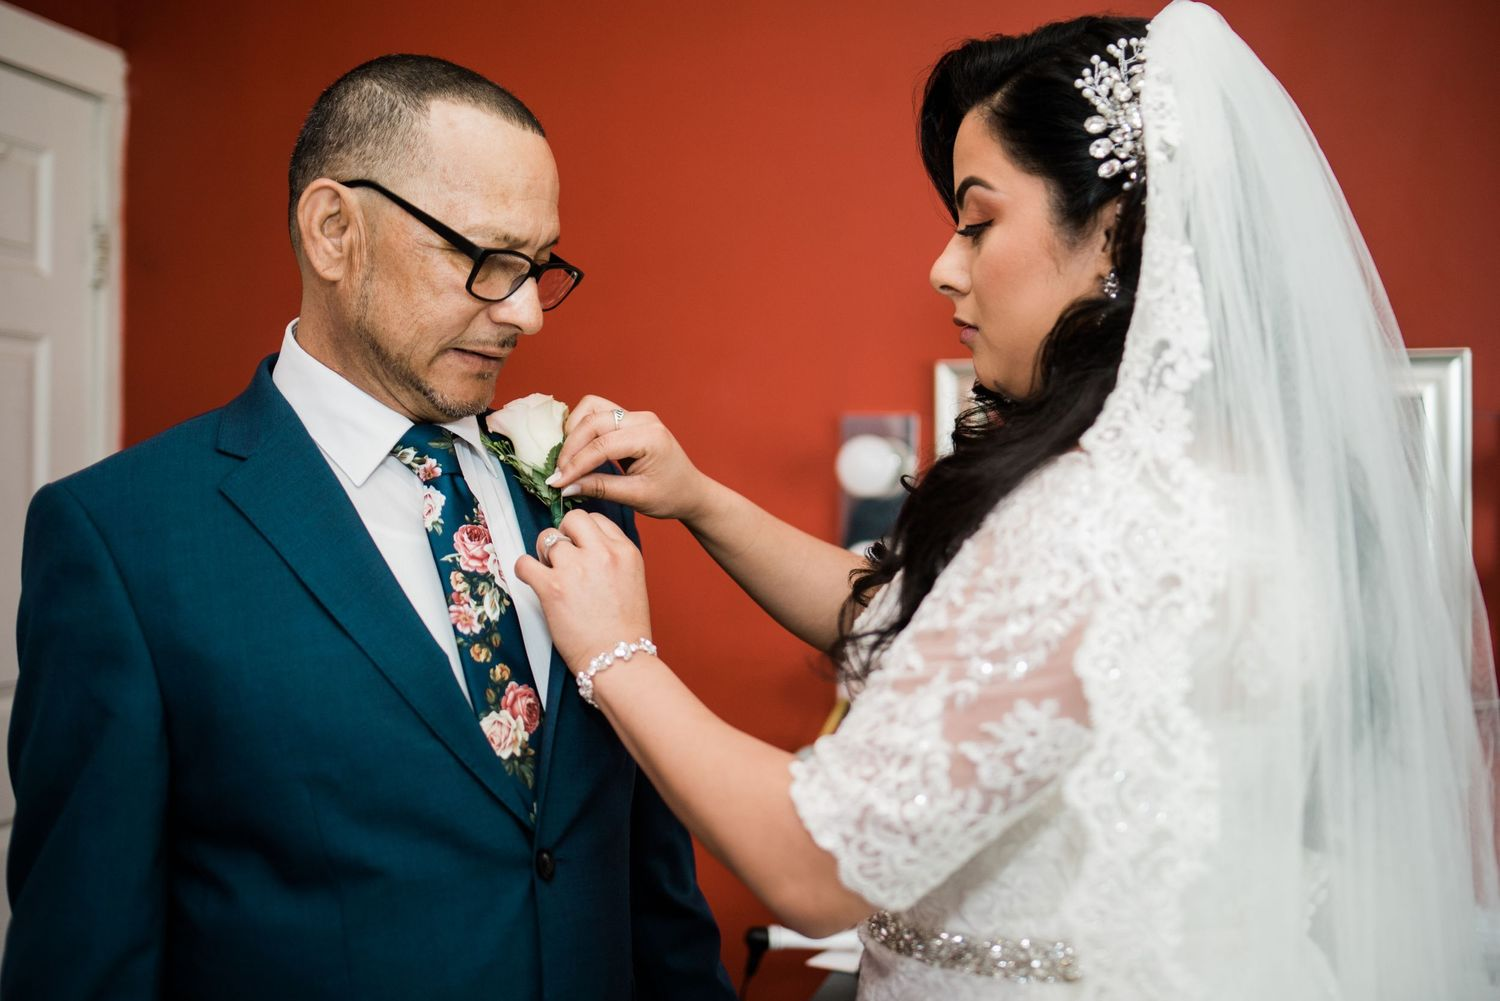 bride putting boutonnière on dad